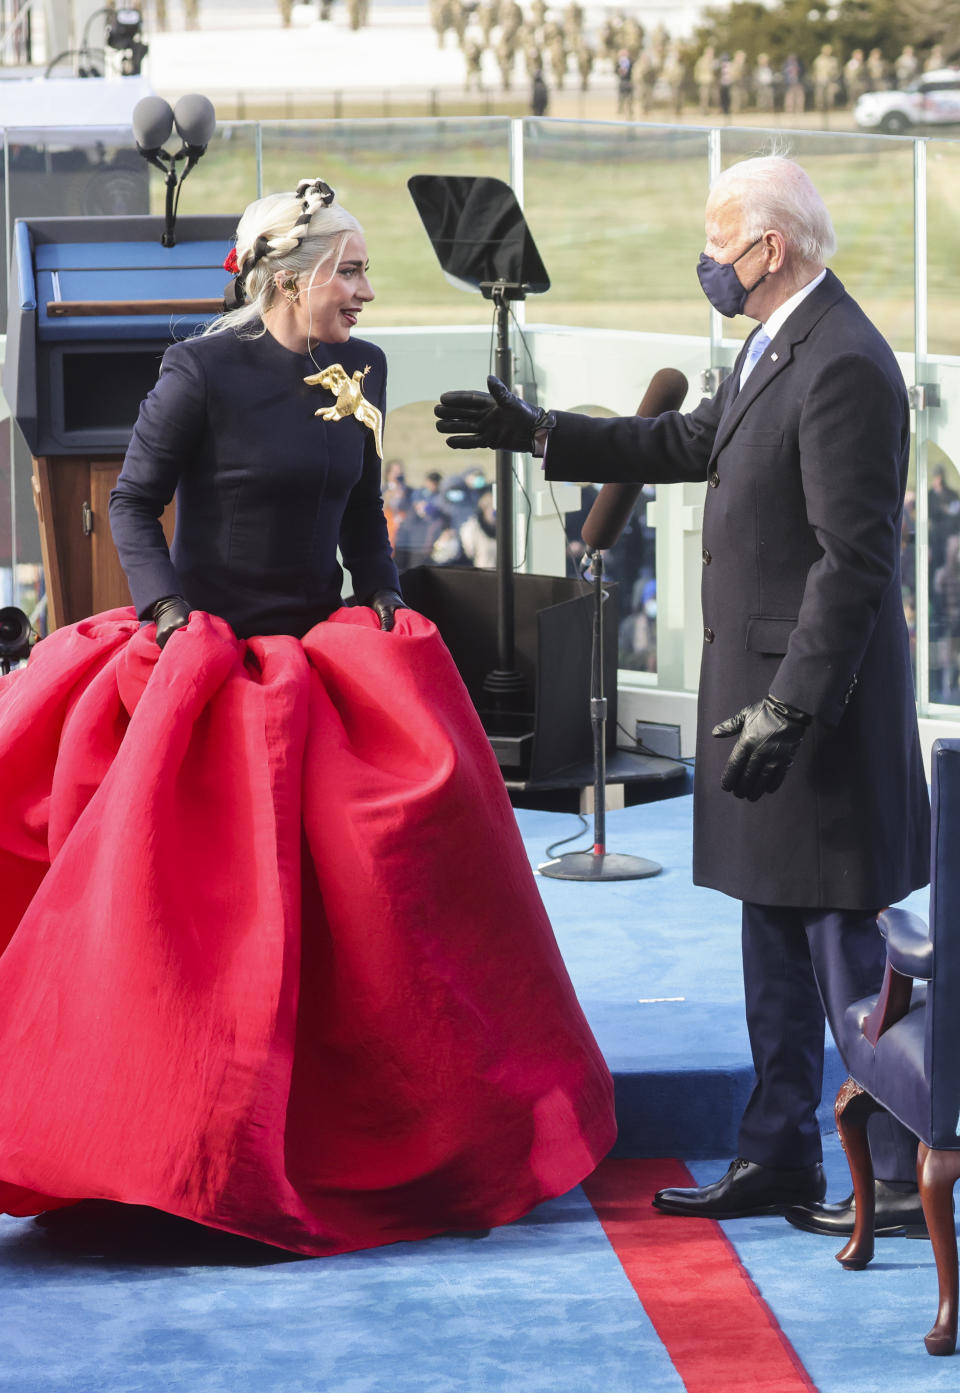 U.S. President-elect Joe Biden gestures towards singer Lady Gaga during his inauguration as the 46th President of the United States on the West Front of the U.S. Capitol in Washington,